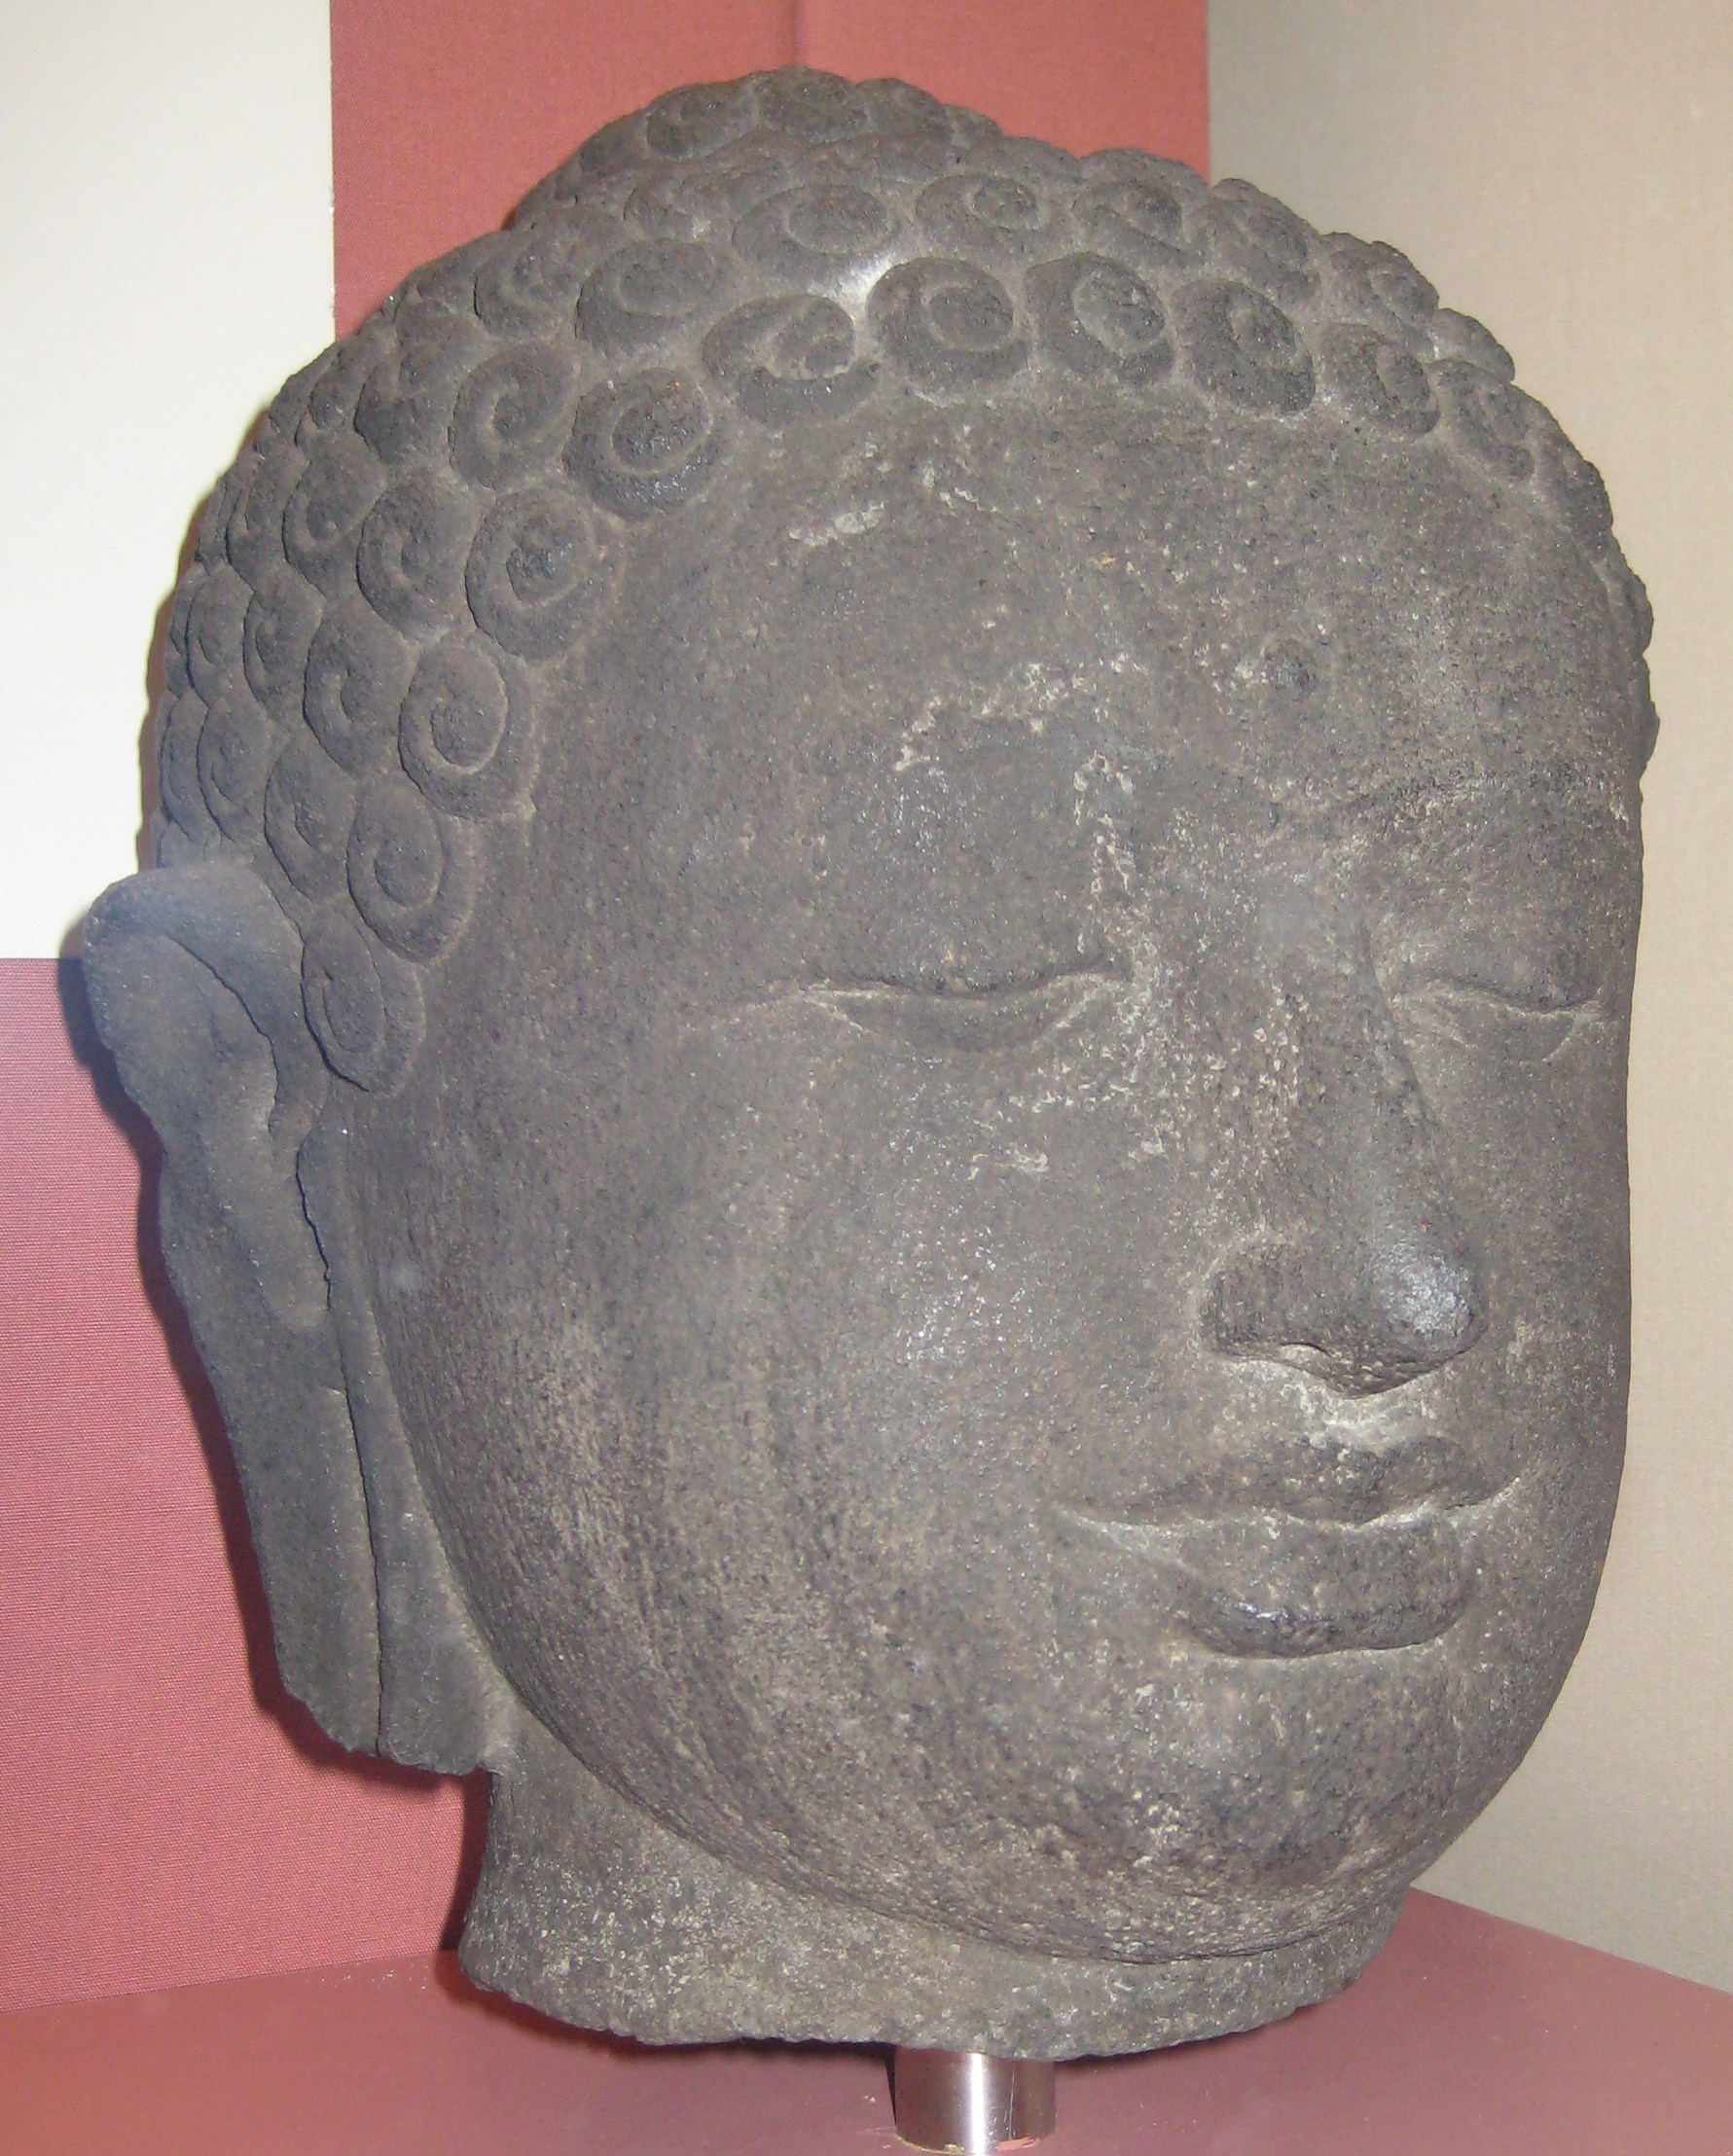 British Museum, London, England, Borobudur Buddha head